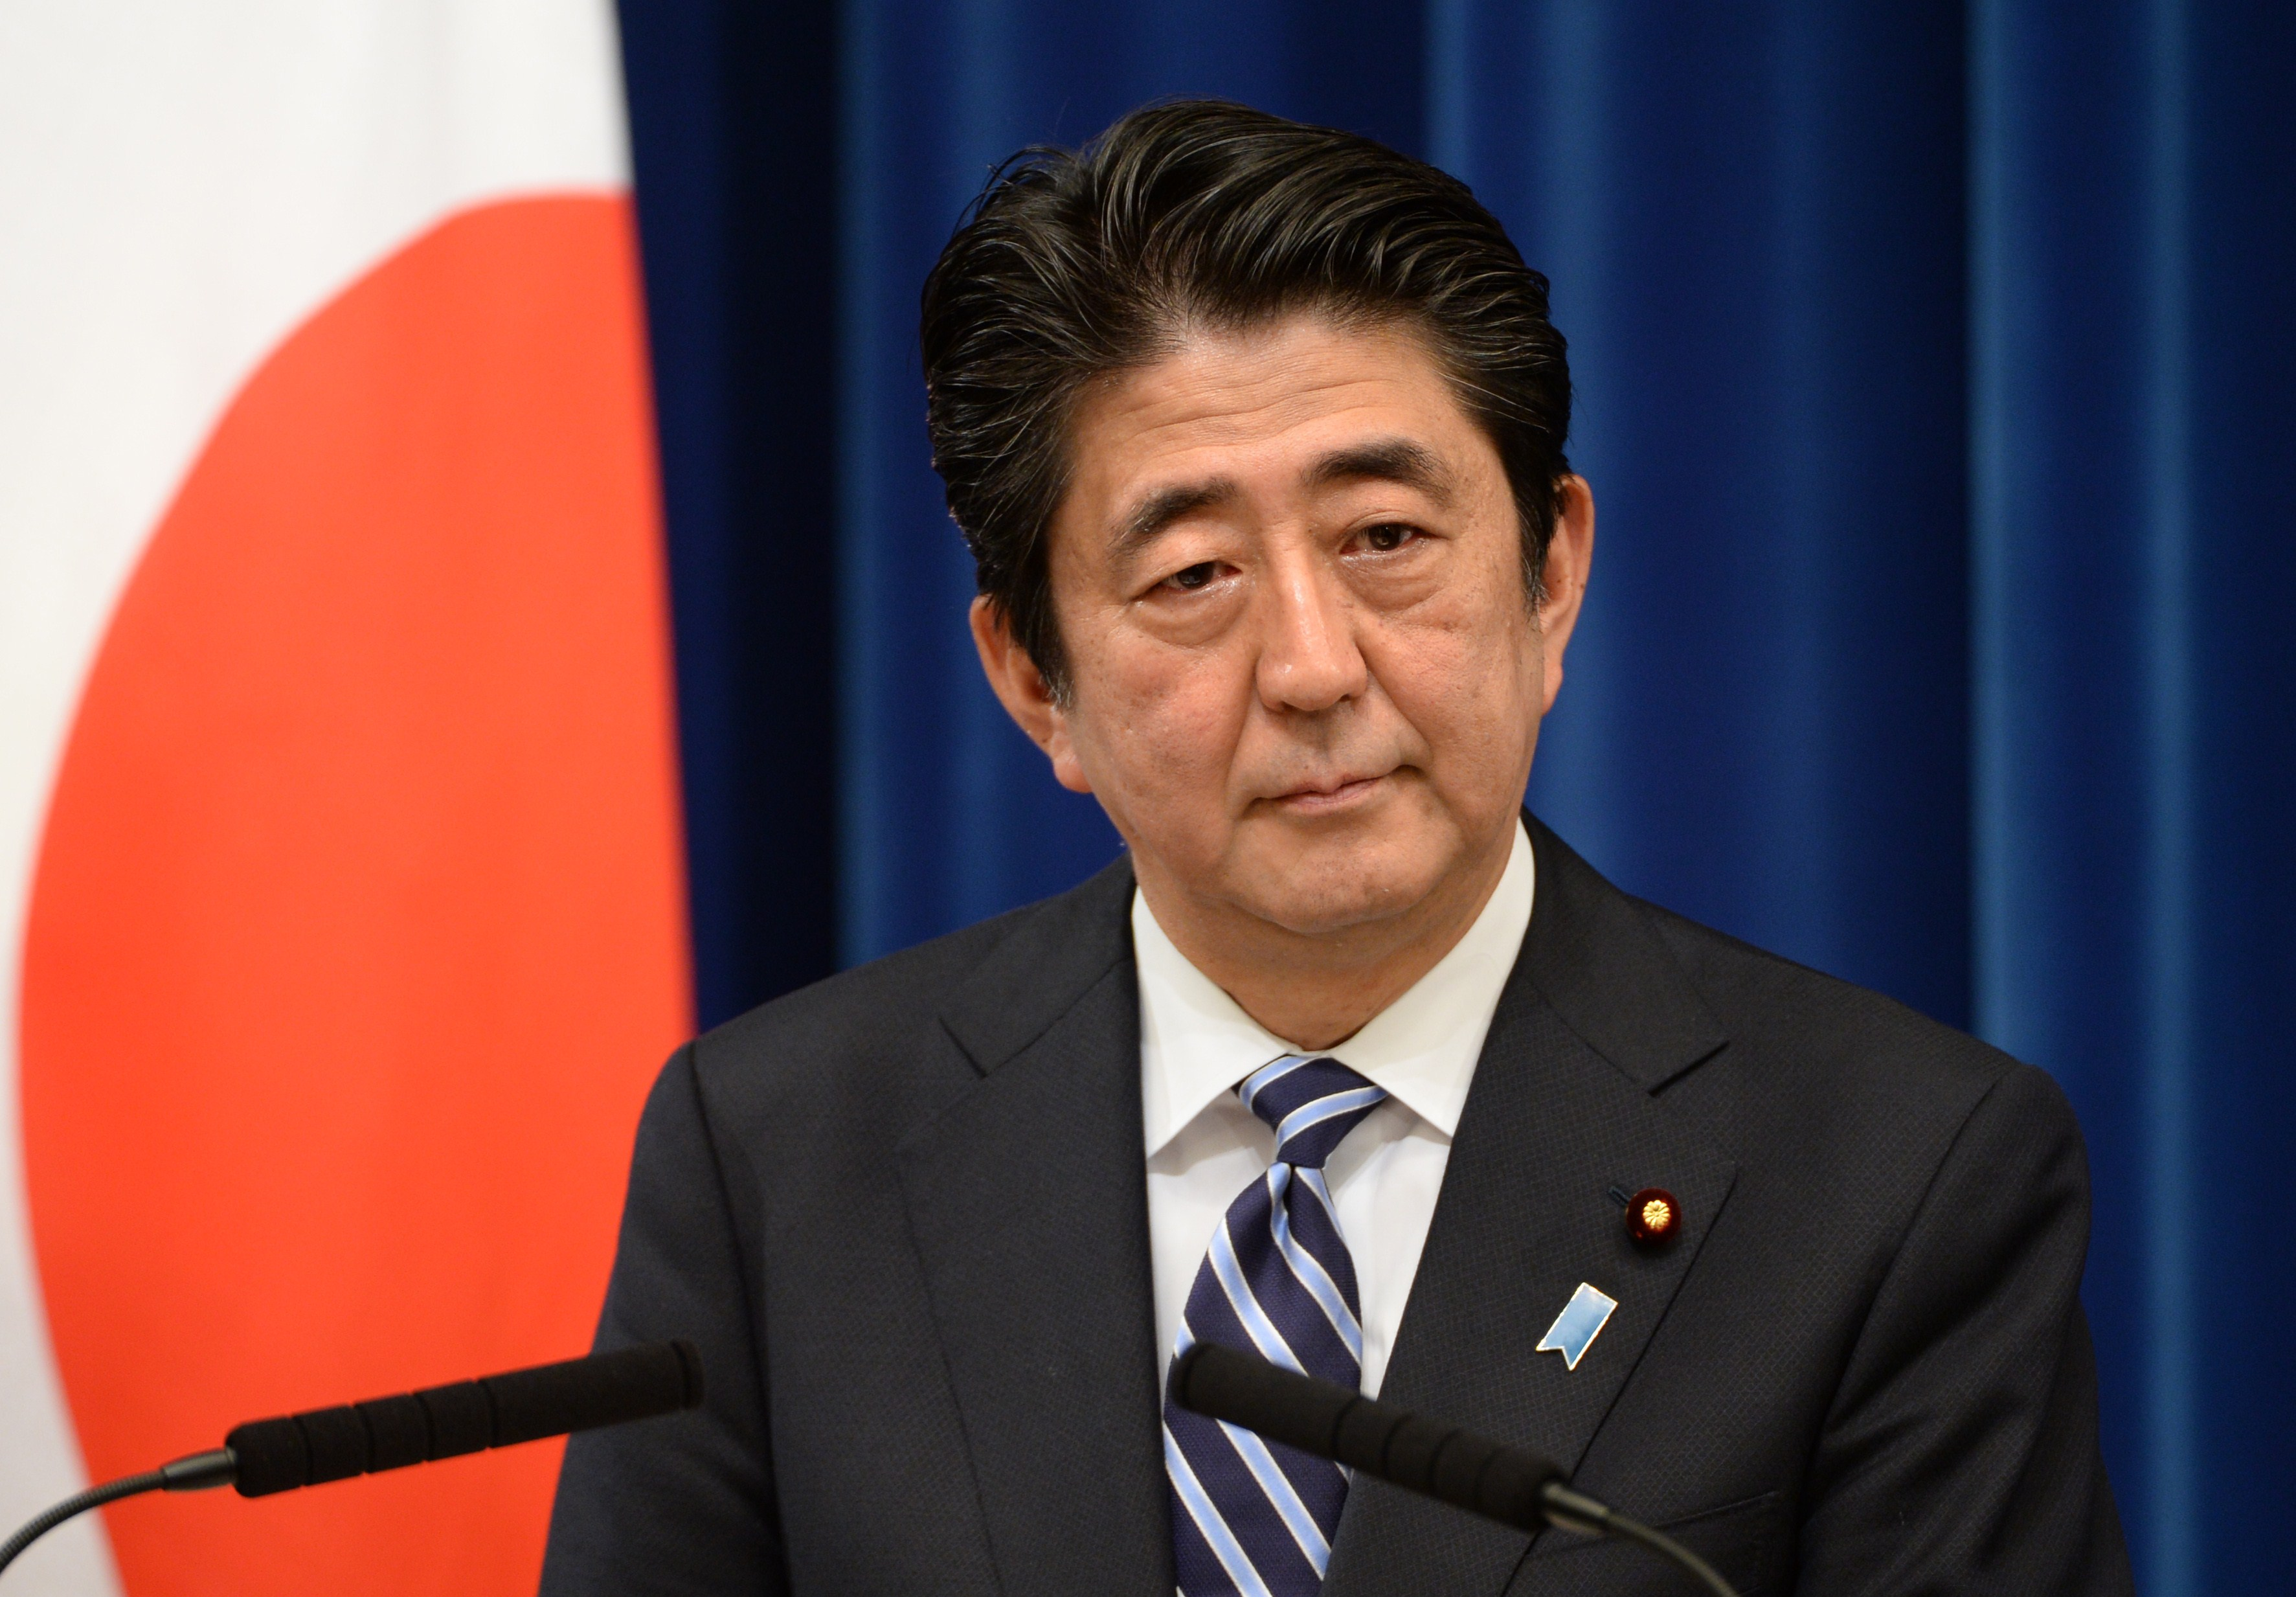 Japan's Prime Minister Shinzo Abe delivers a speech during a press conference at his official residence in Tokyo on May 15, 2014